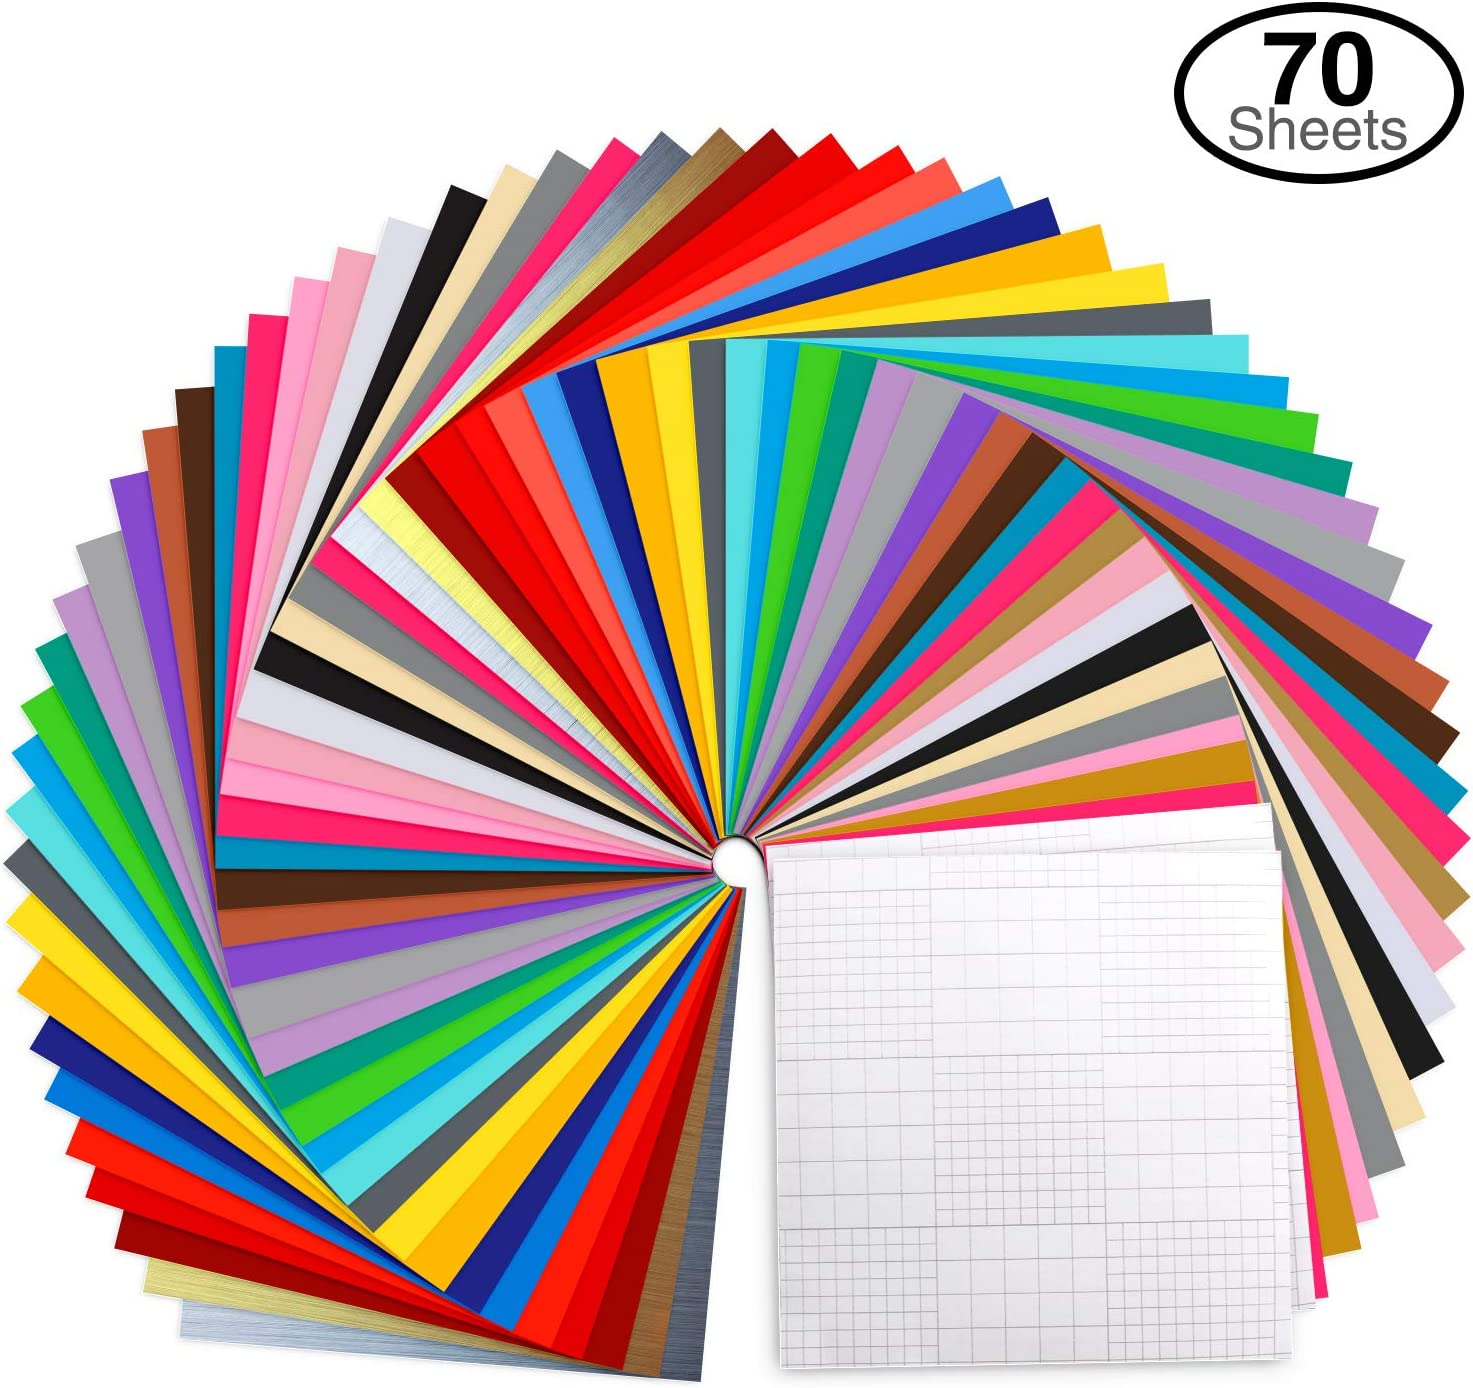 """Ohuhu Permanent Adhesive Backed Vinyl Set, 60 Vinyl Sheets + 10 Transfer Tape Sheets, 30 Assorted Colors 12"""" x 12"""", for Silhouette Cameo, Cricut, Other Craft Cutters (70 Pack) Christmas Decorating"""